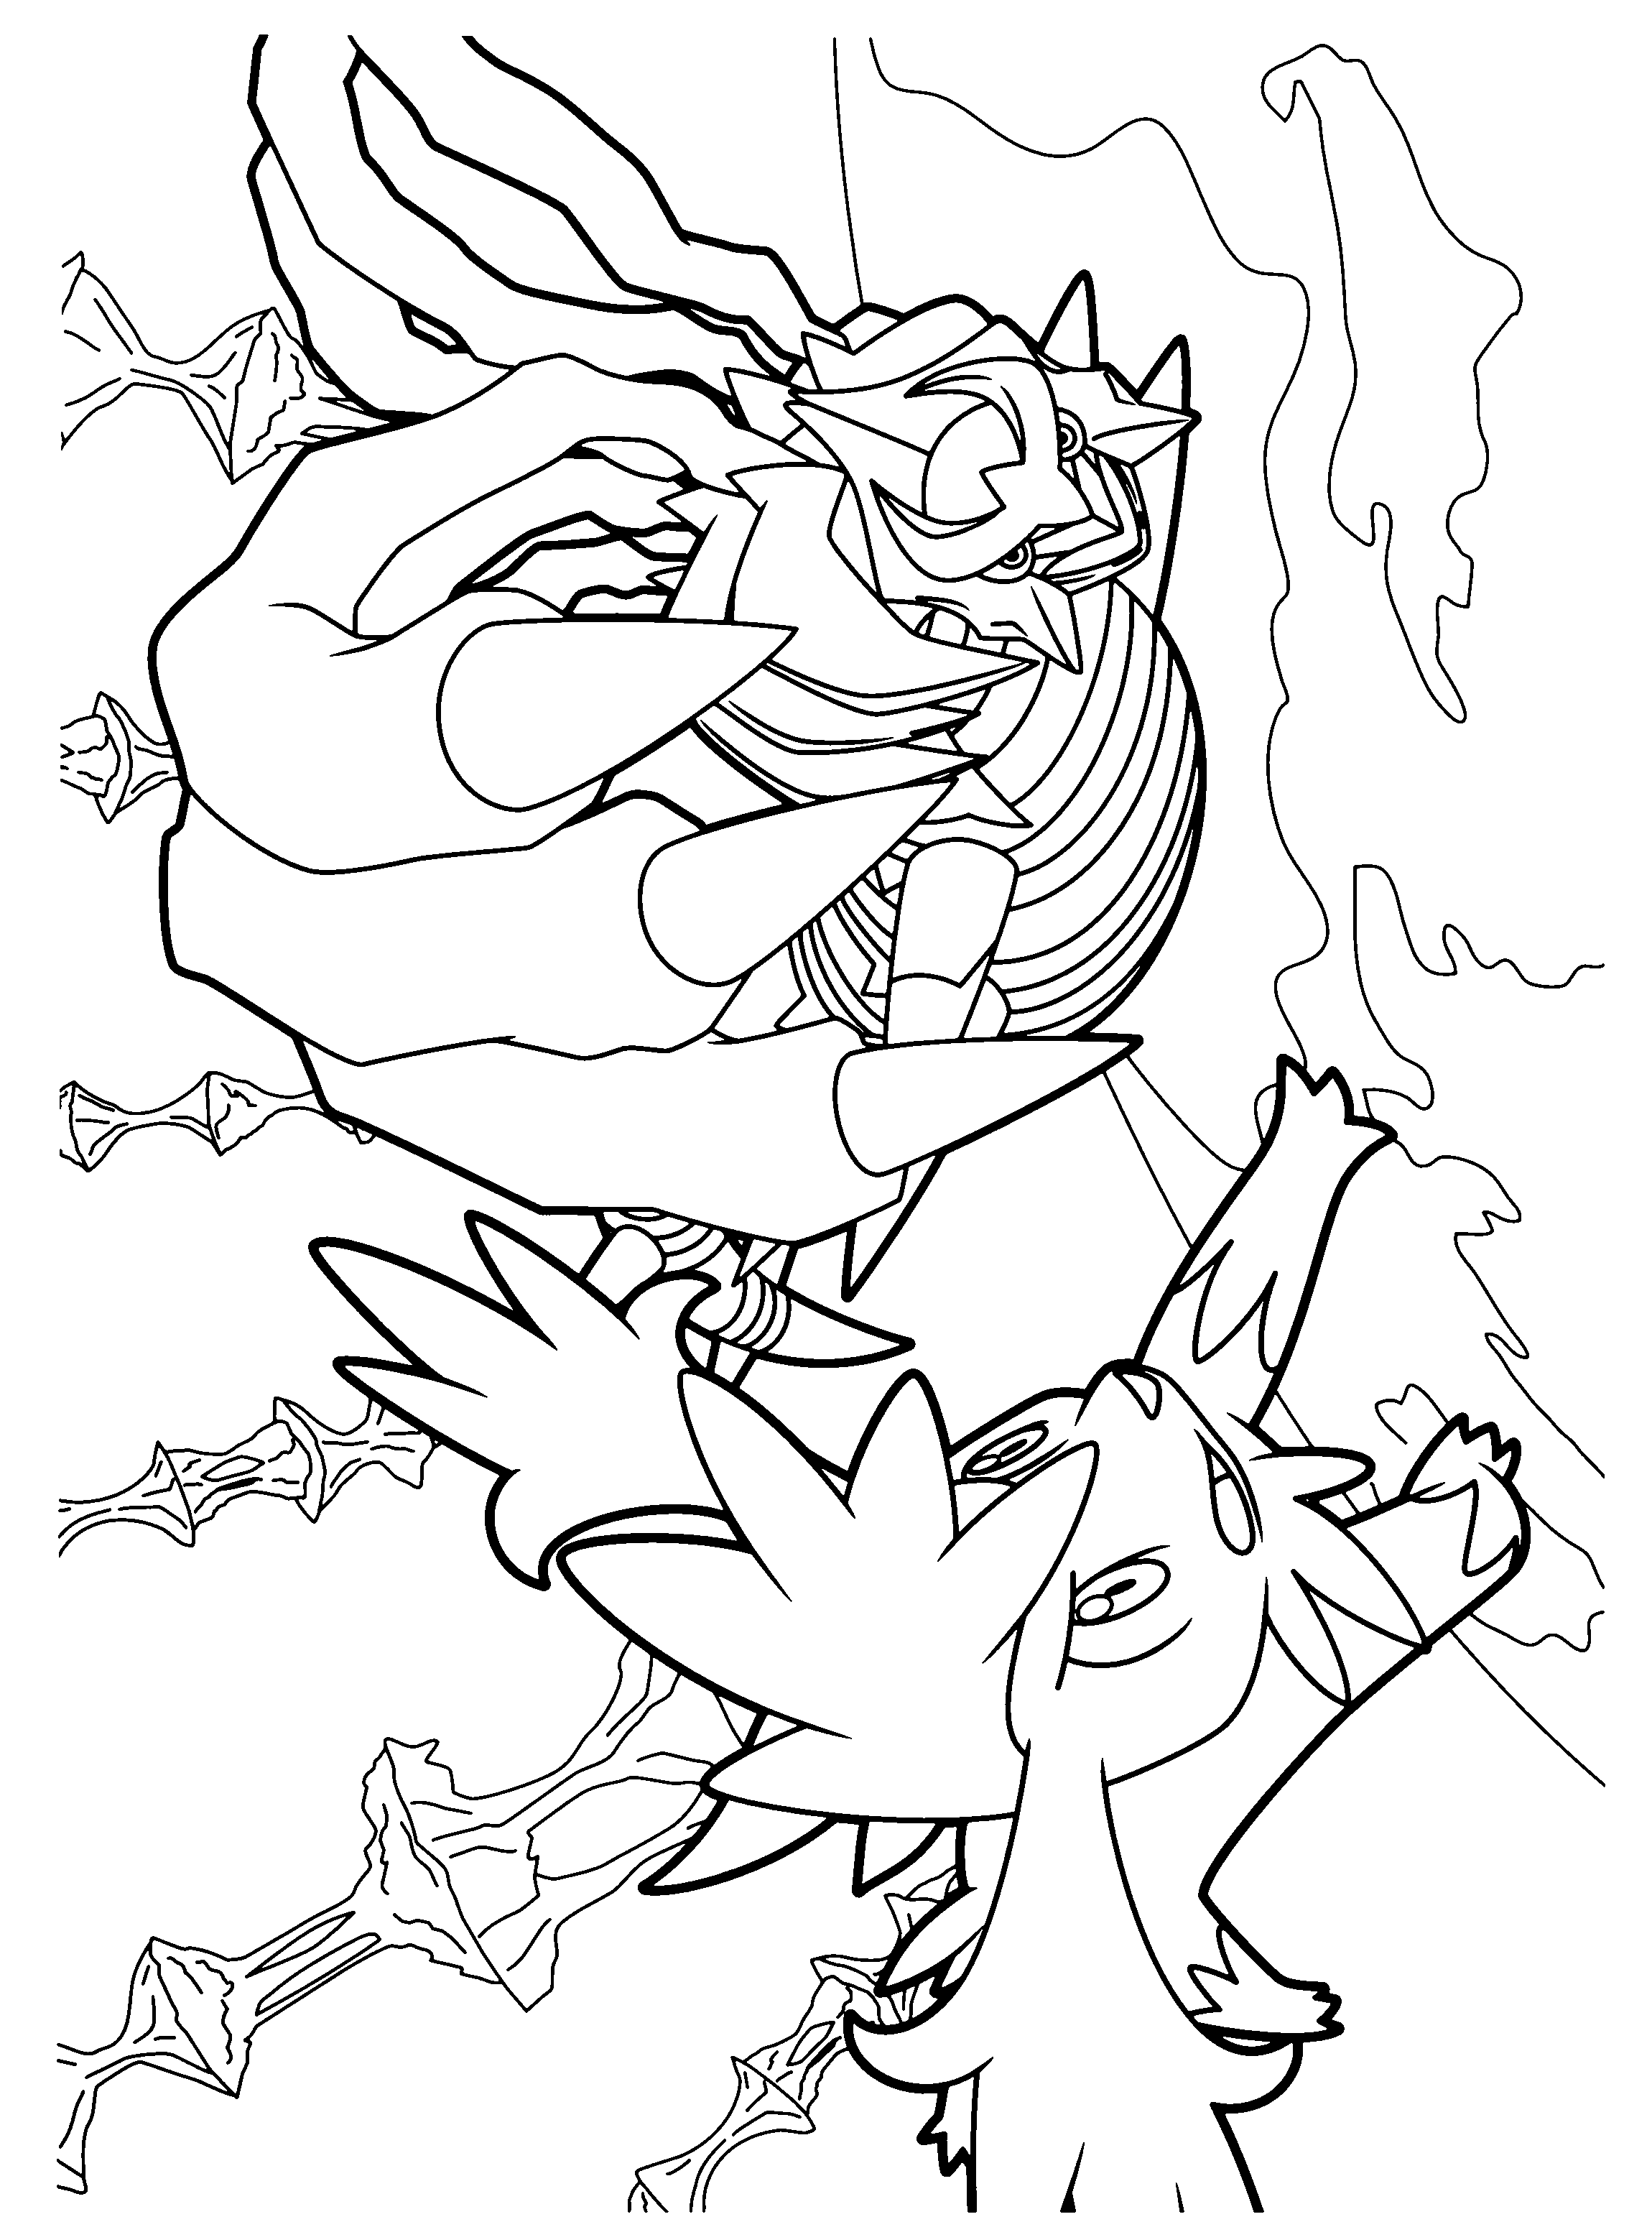 Pokemon coloring pages magnezone - Pokemon Diamond Pearl Coloring Pages